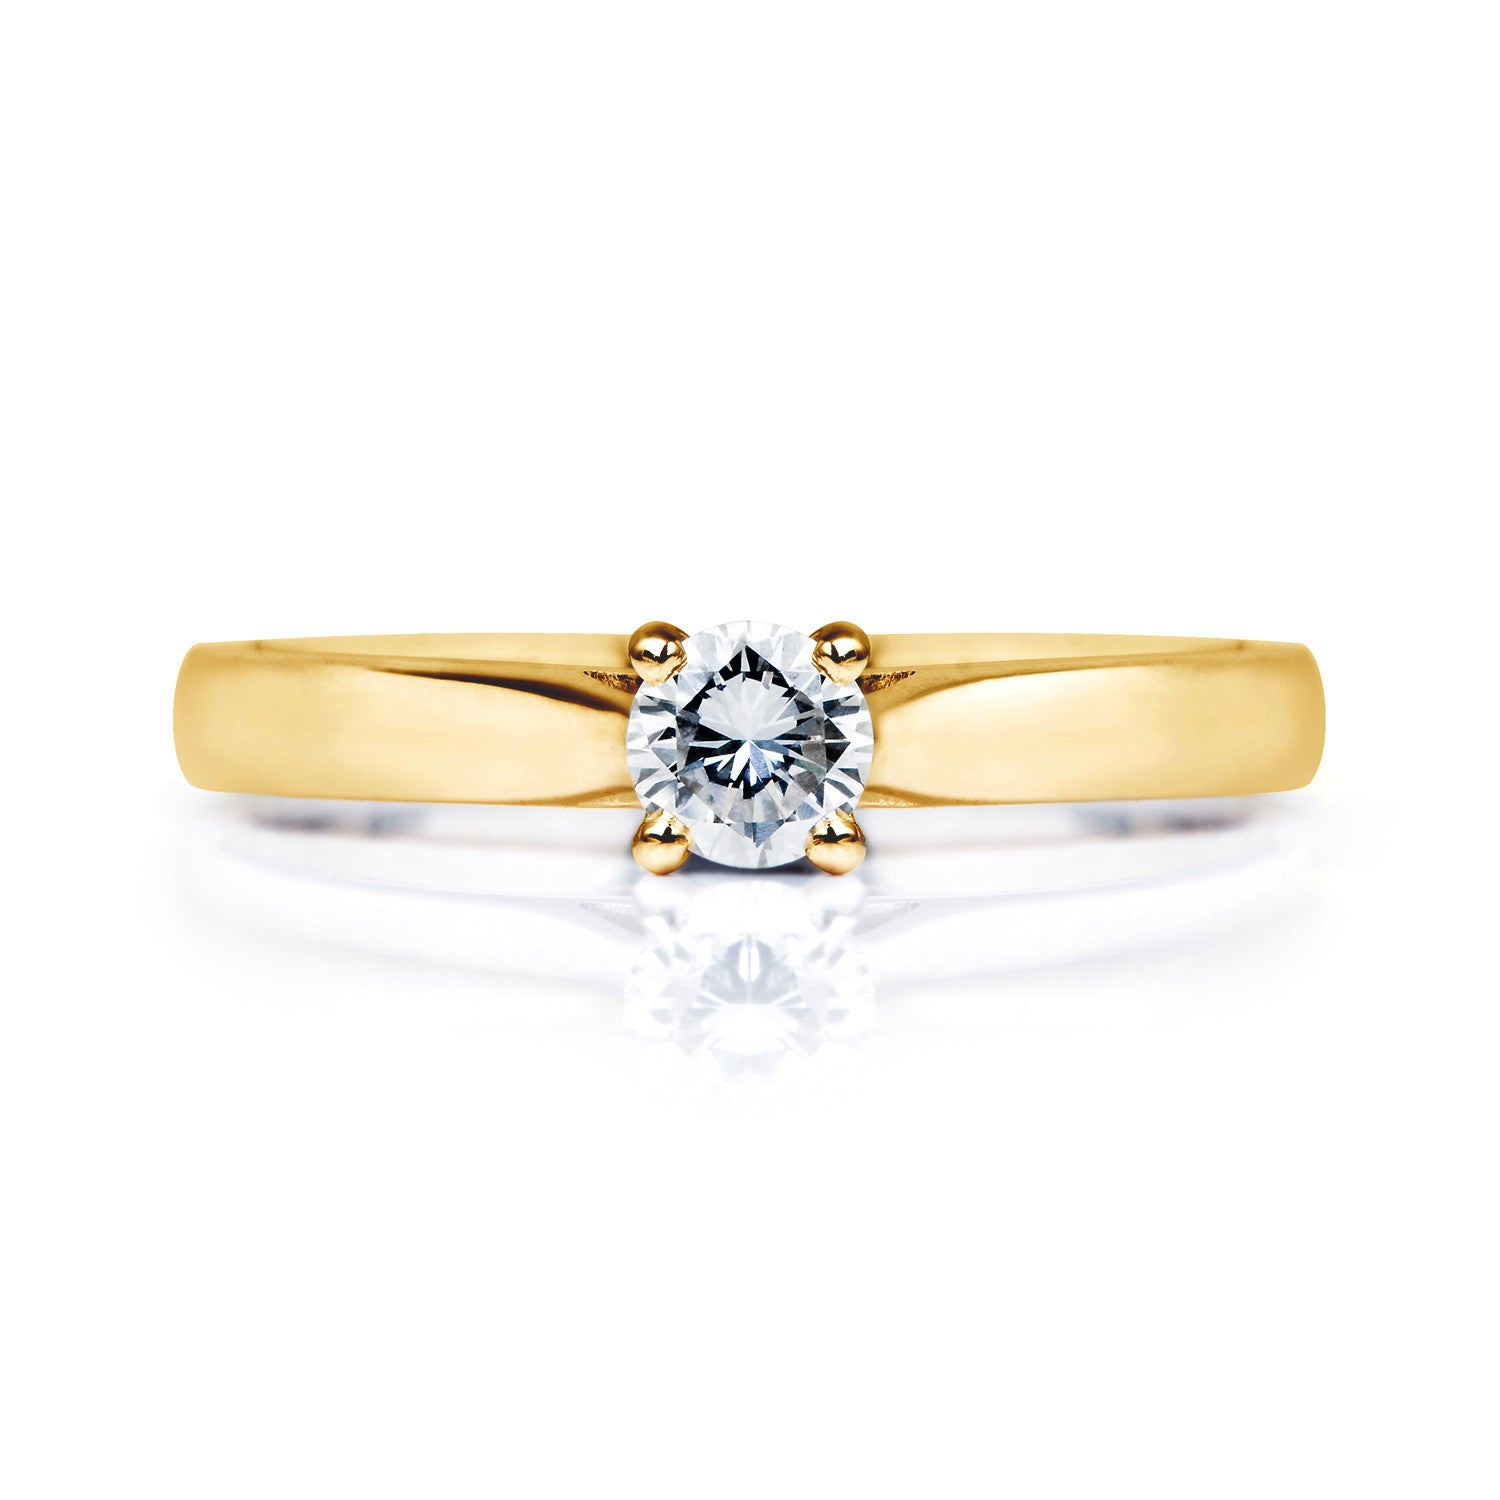 Venus Ethical Diamond Engagement Ring, 18ct Fairtrade Gold